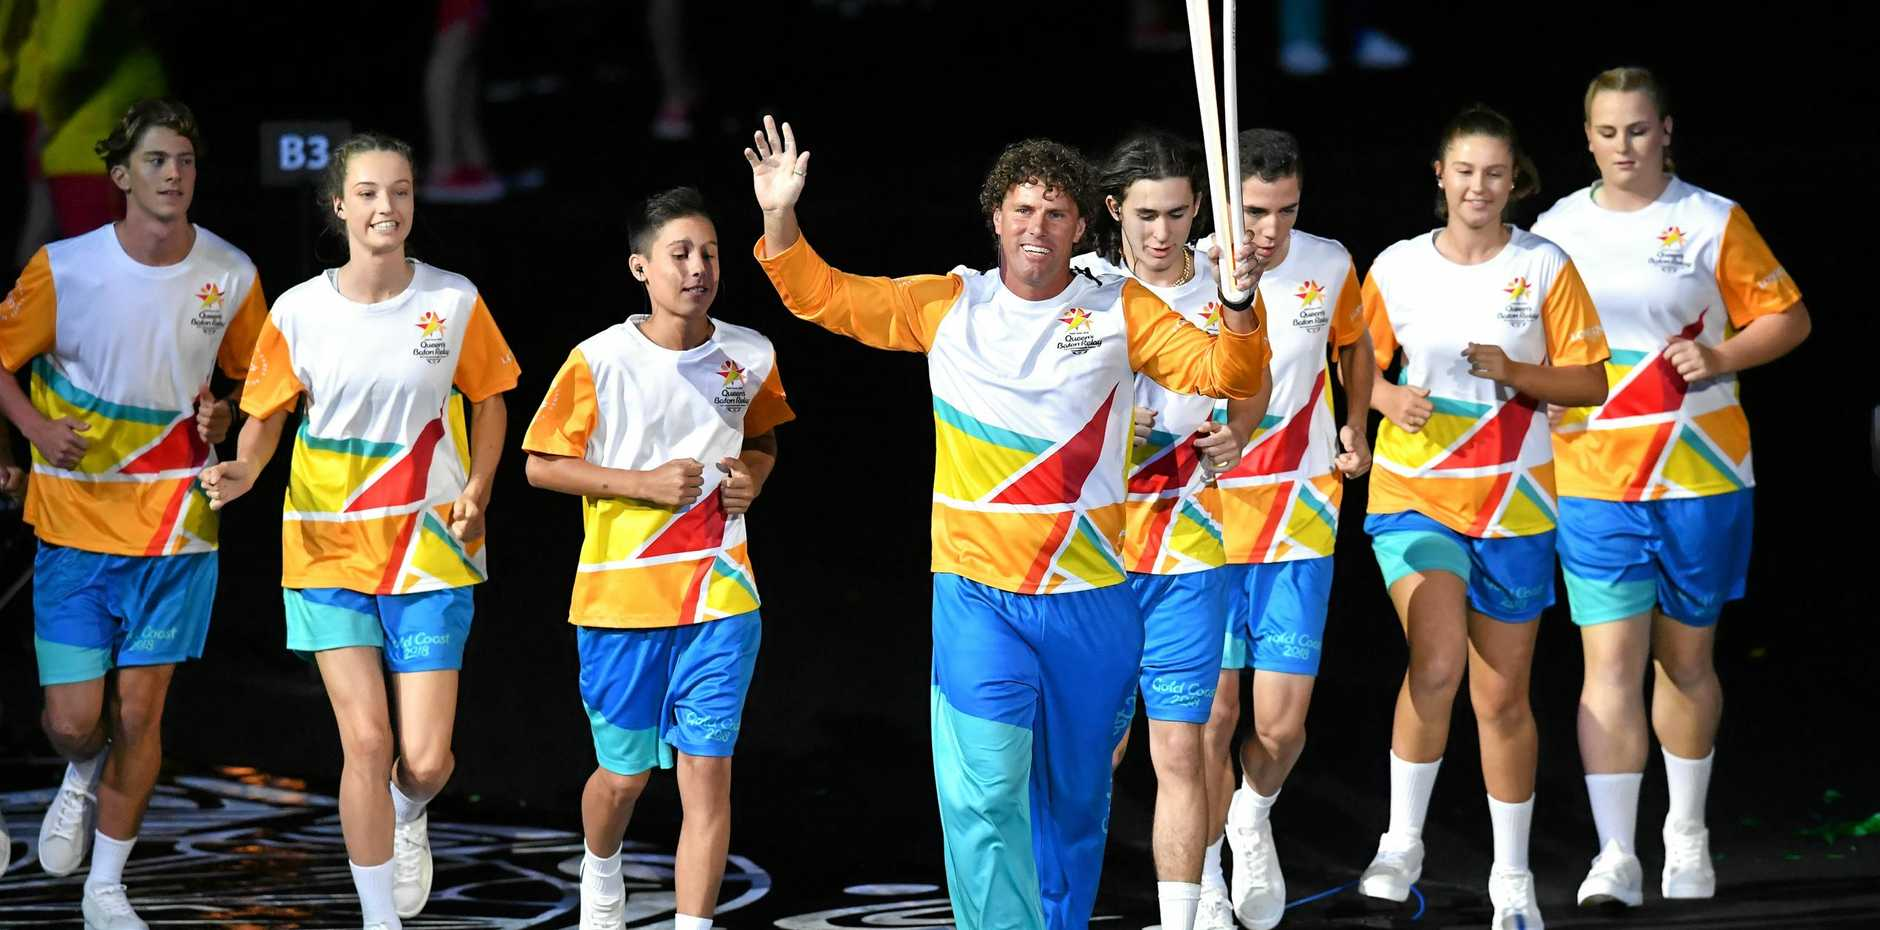 Former Hockey player Brent Livermore (centre) enters the stadium with the Queen's Baton during the Opening Ceremony of the XXI Commonwealth Games at Carrara Stadium on the Gold Coast, Australia, Wednesday, April 4, 2018.